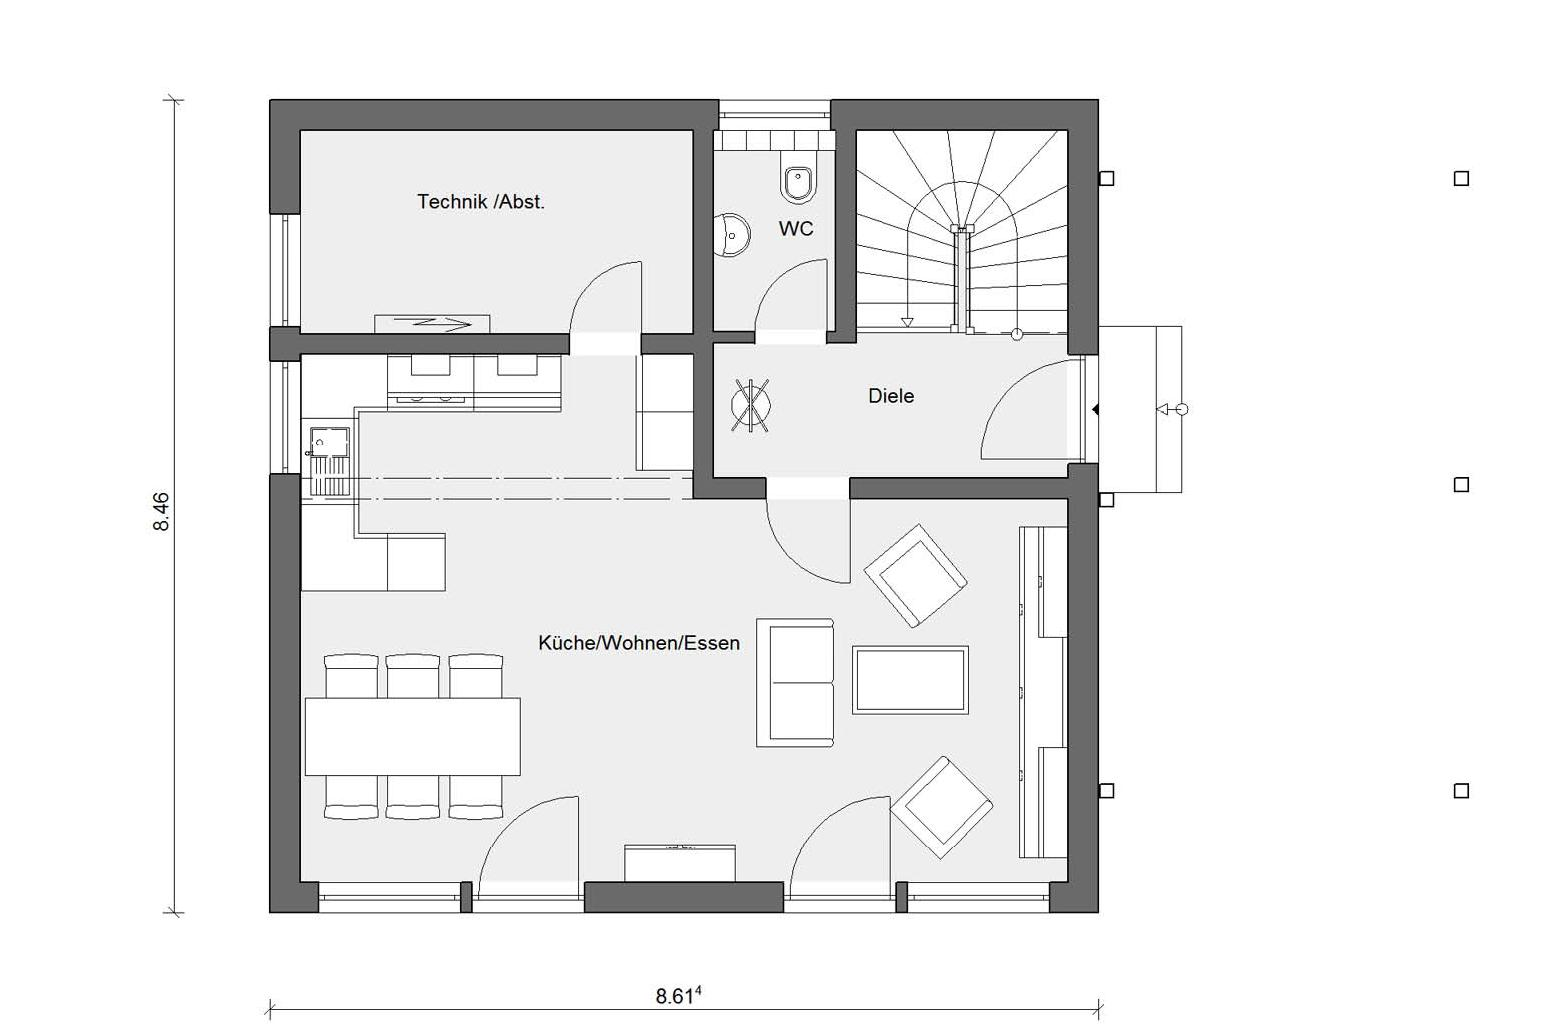 Ground floor plan E 20-118.3 Prefabricated house for 2 persons